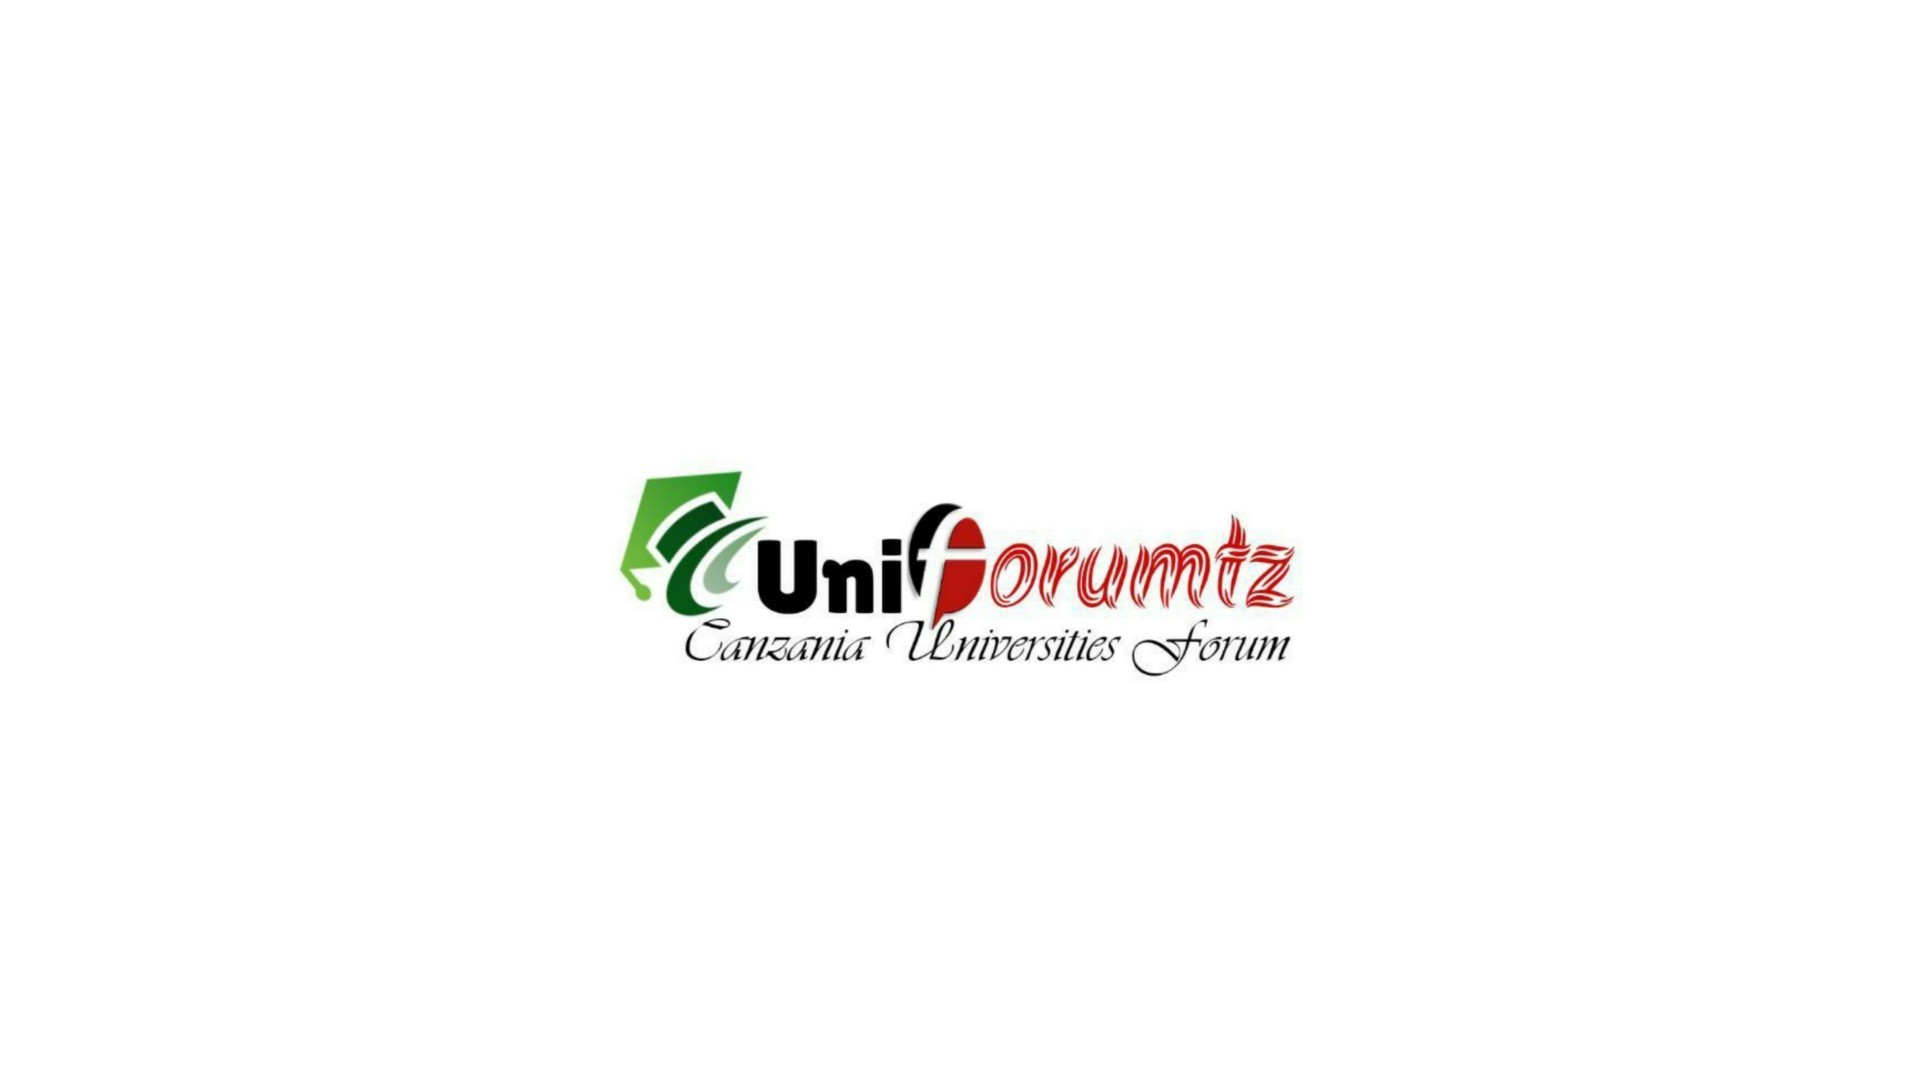 Uniforumtz Updates